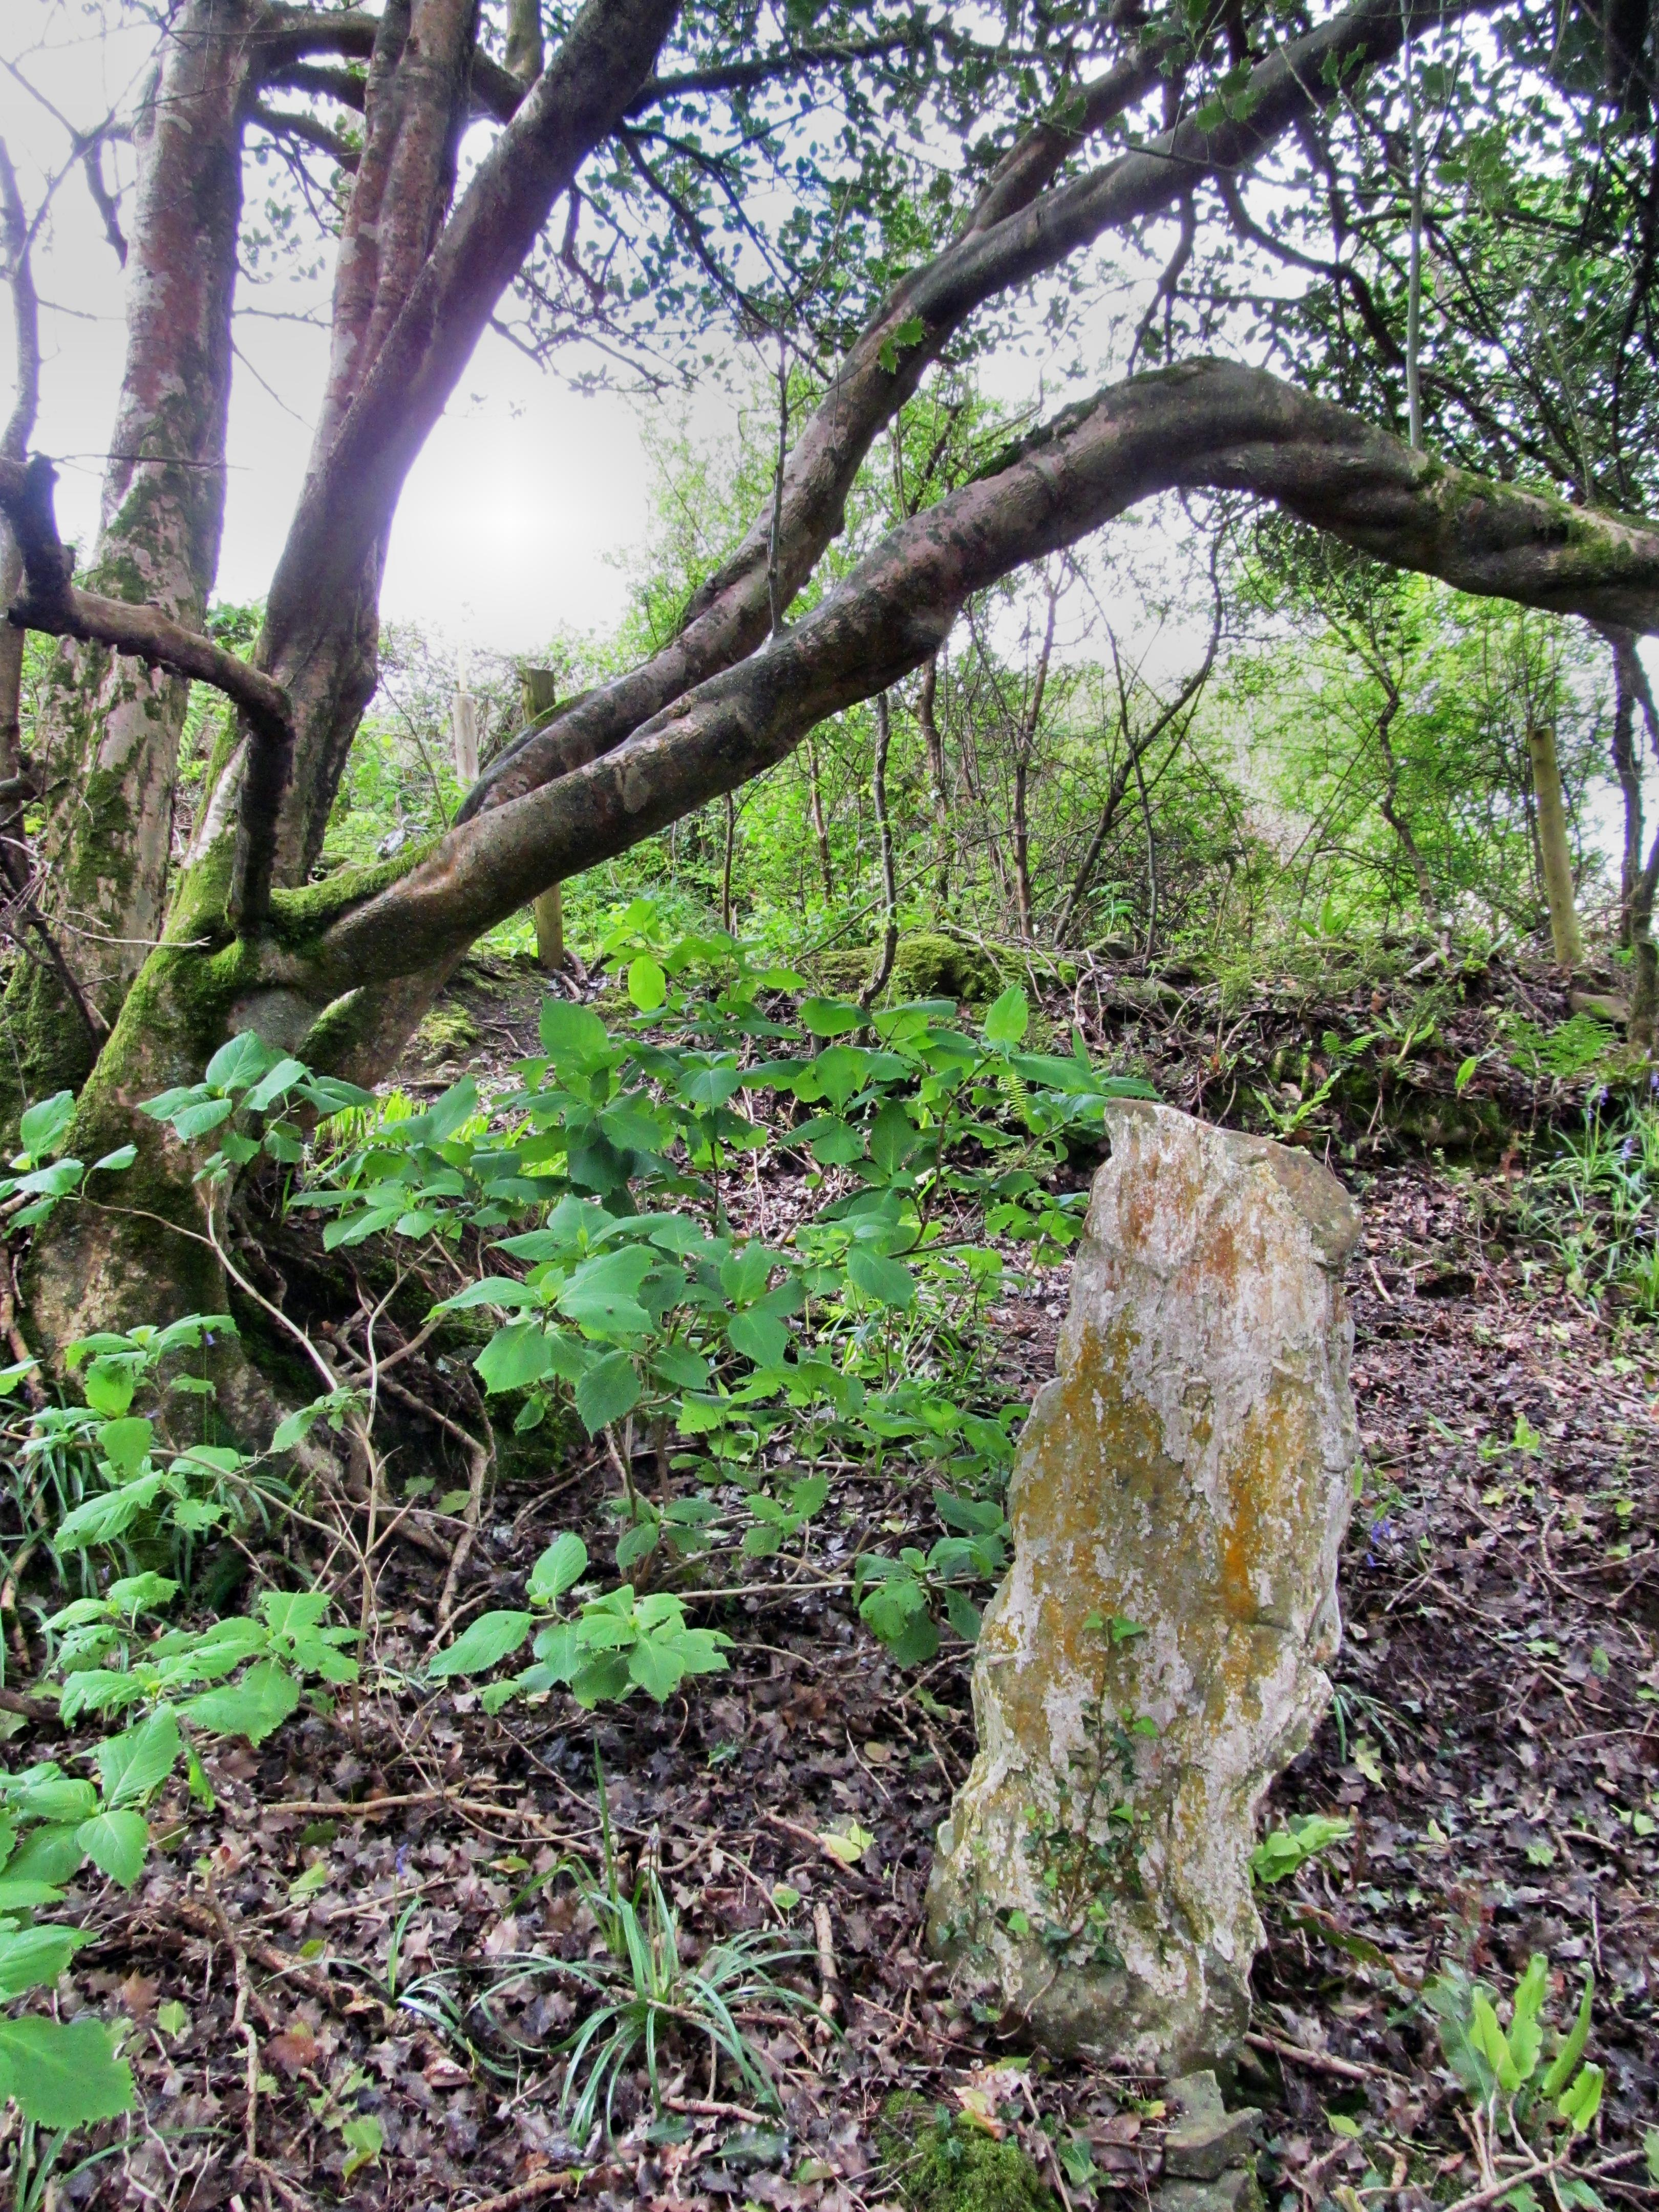 Hawthorn, hazel, willow and ash trees were sacred to the druids